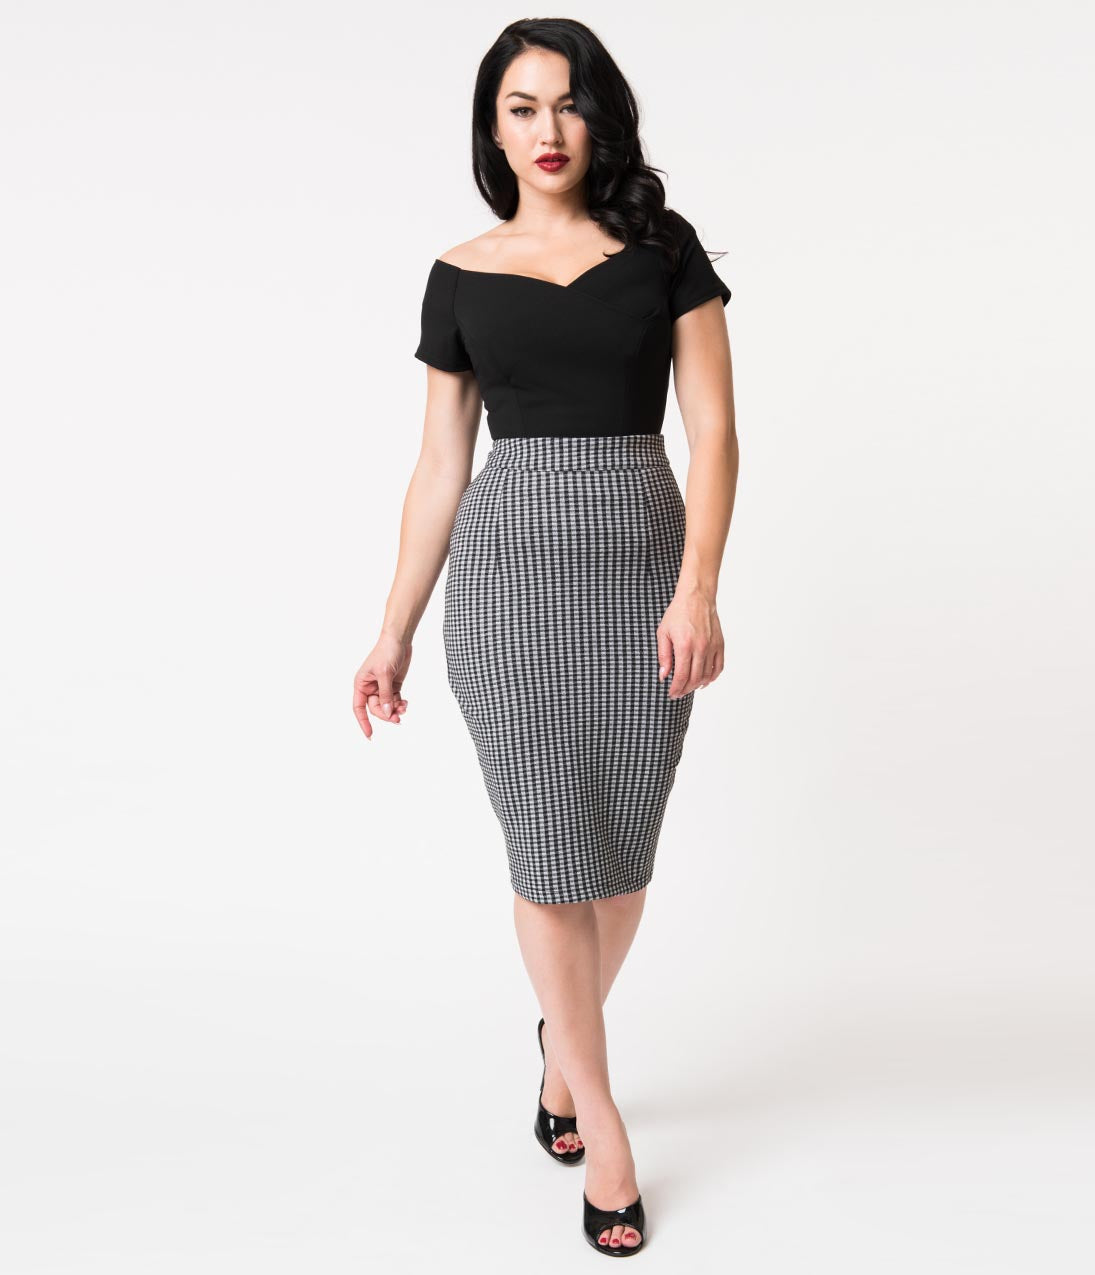 1950s Swing Skirt, Poodle Skirt, Pencil Skirts Voodoo Vixen 1960S Style Black  White Gingham Hazel Pencil Skirt $54.00 AT vintagedancer.com